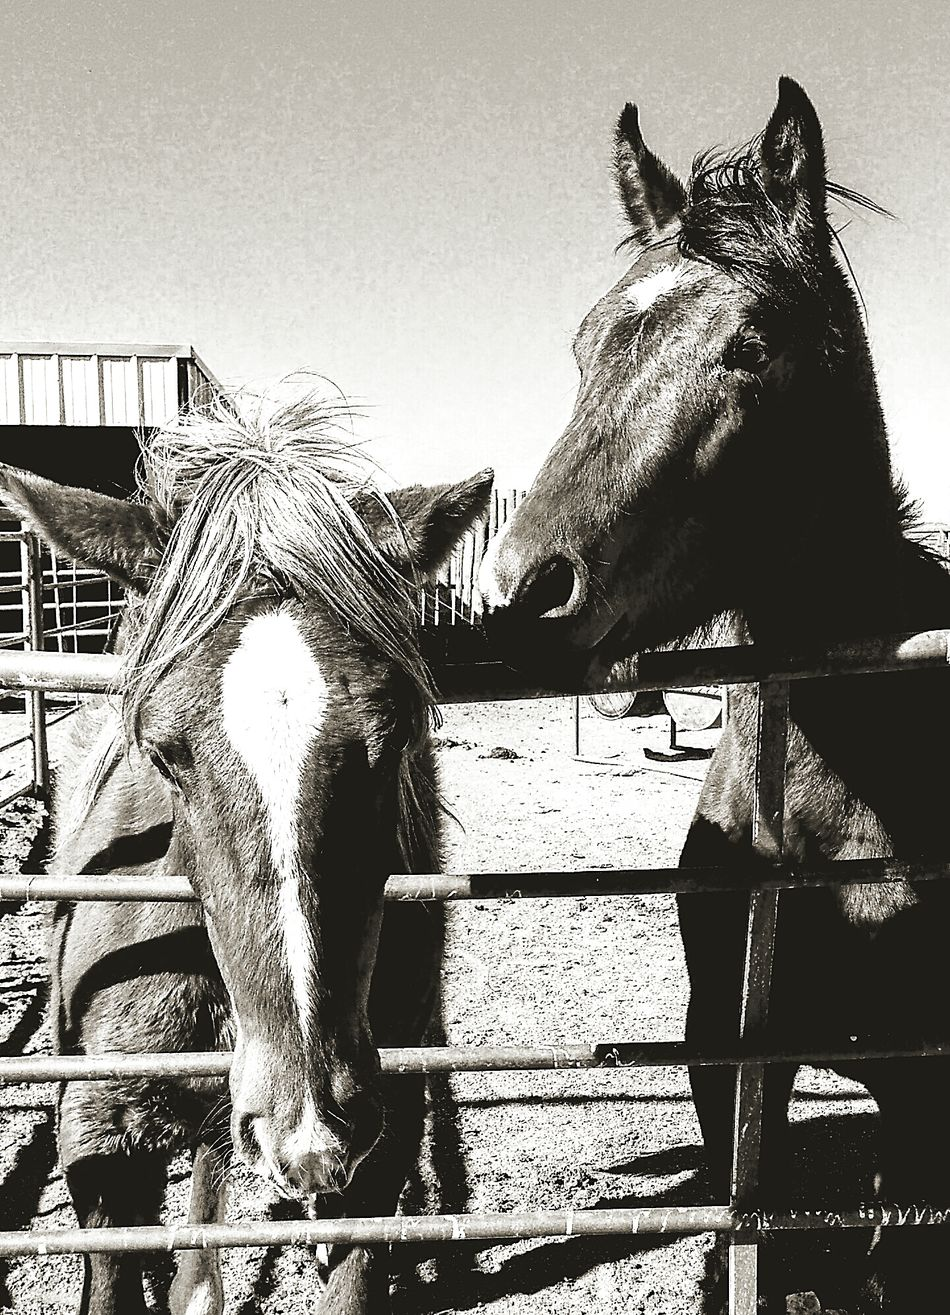 Ranch horses Domestic Animals Animal Themes Horse Mammal Sunlight Herbivorous Livestock Working Animal Sky Outdoors No People Close-up Stable Paddock Day Hoofed Mammal Country Life Portrait Lifestyle Cowboy Farm Ranch Barn Ranch Life Country Living